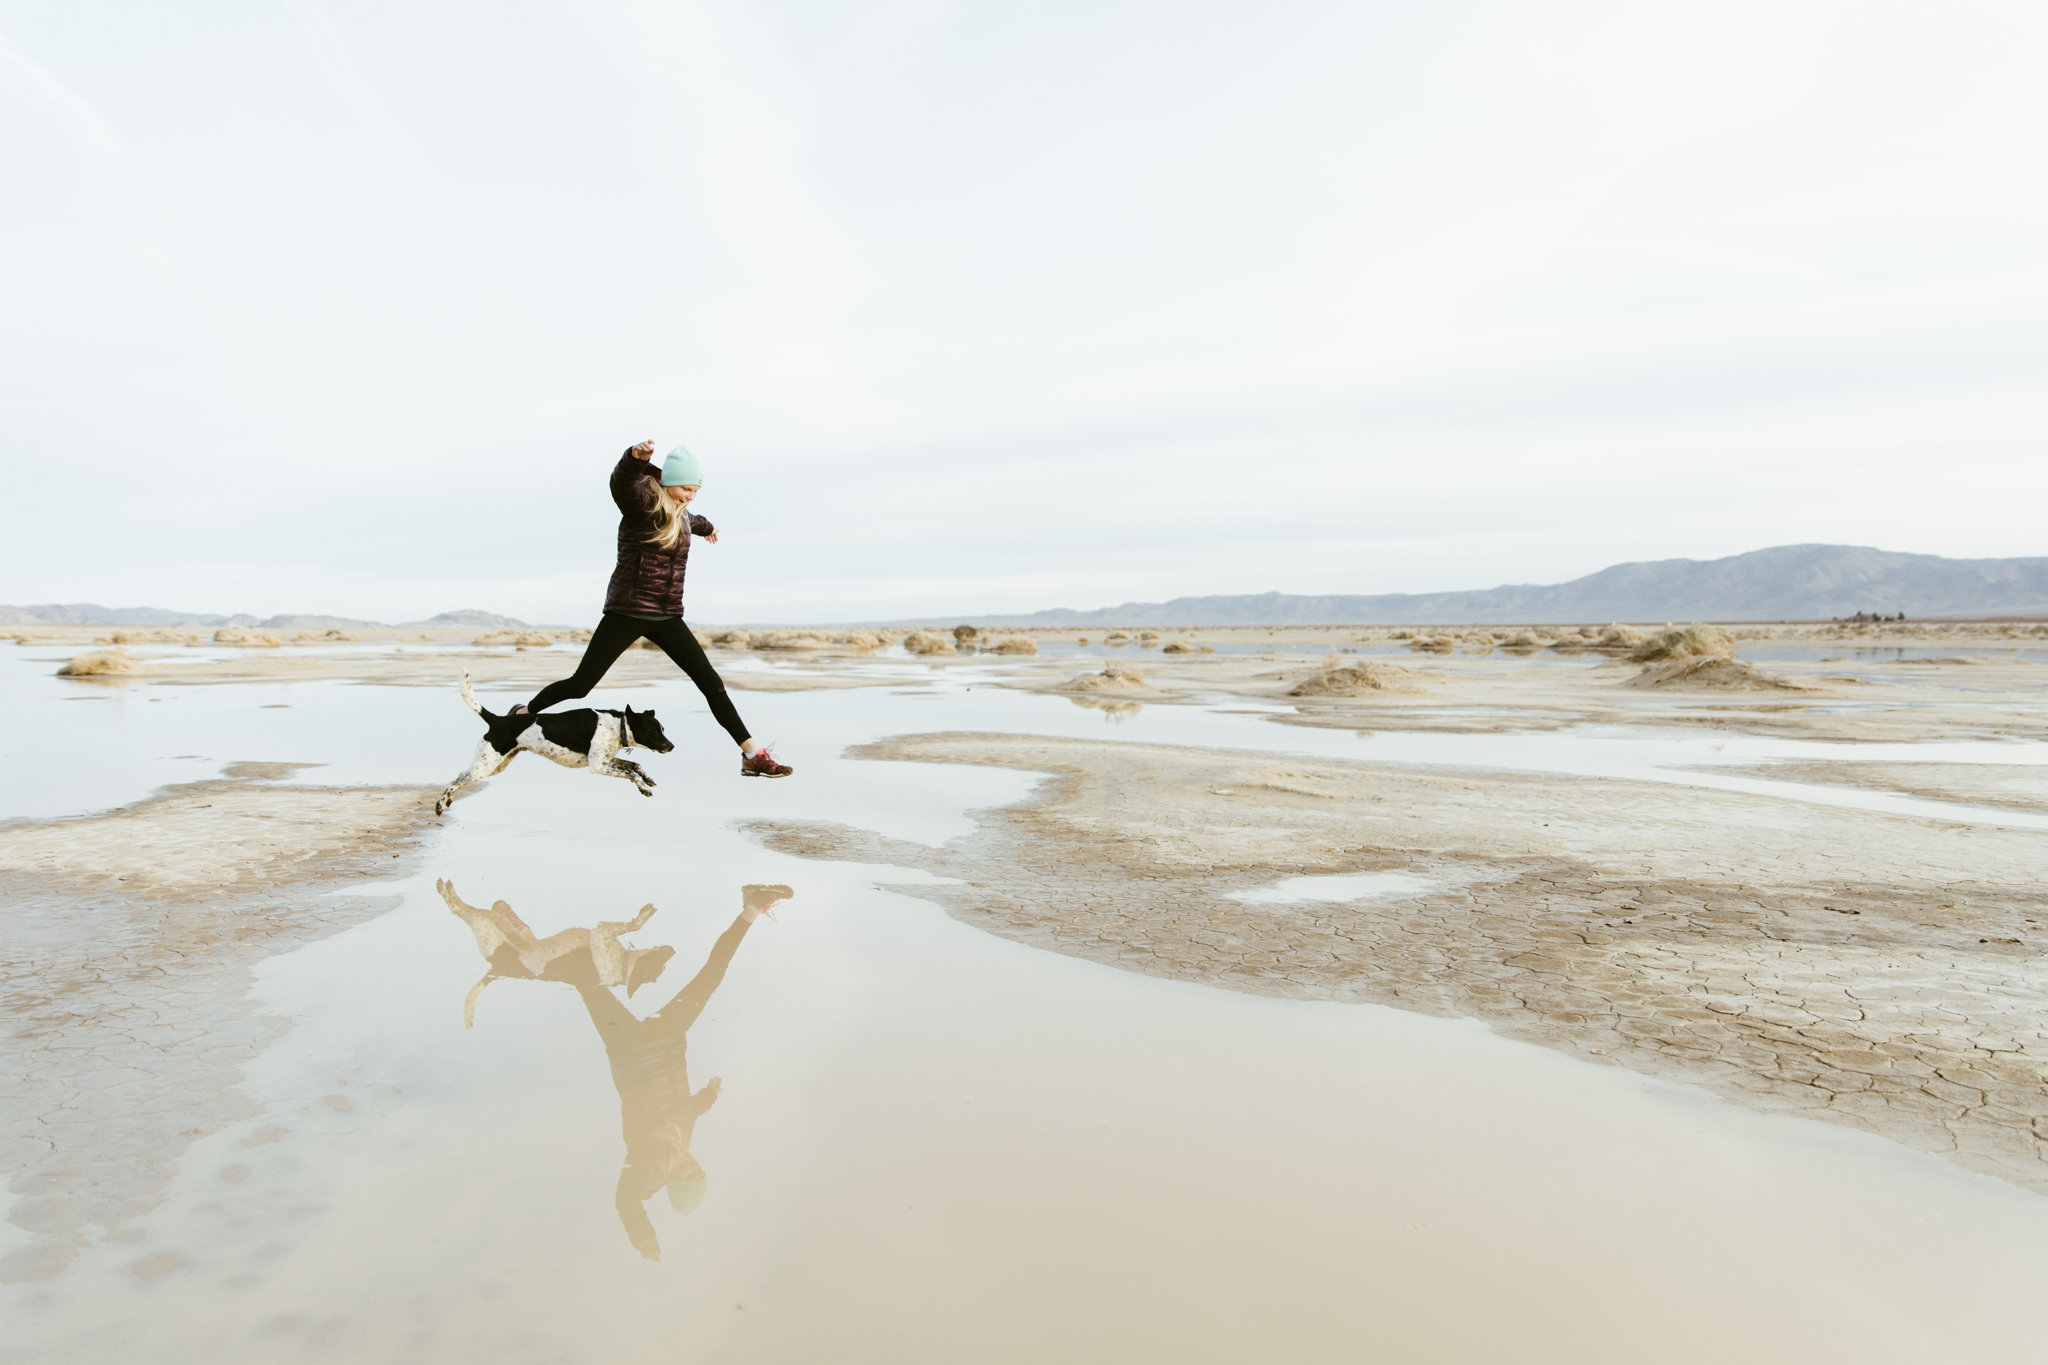 exploring california | utah and california adventure elopement photographers | the hearnes adventure photography | www.thehearnes.com